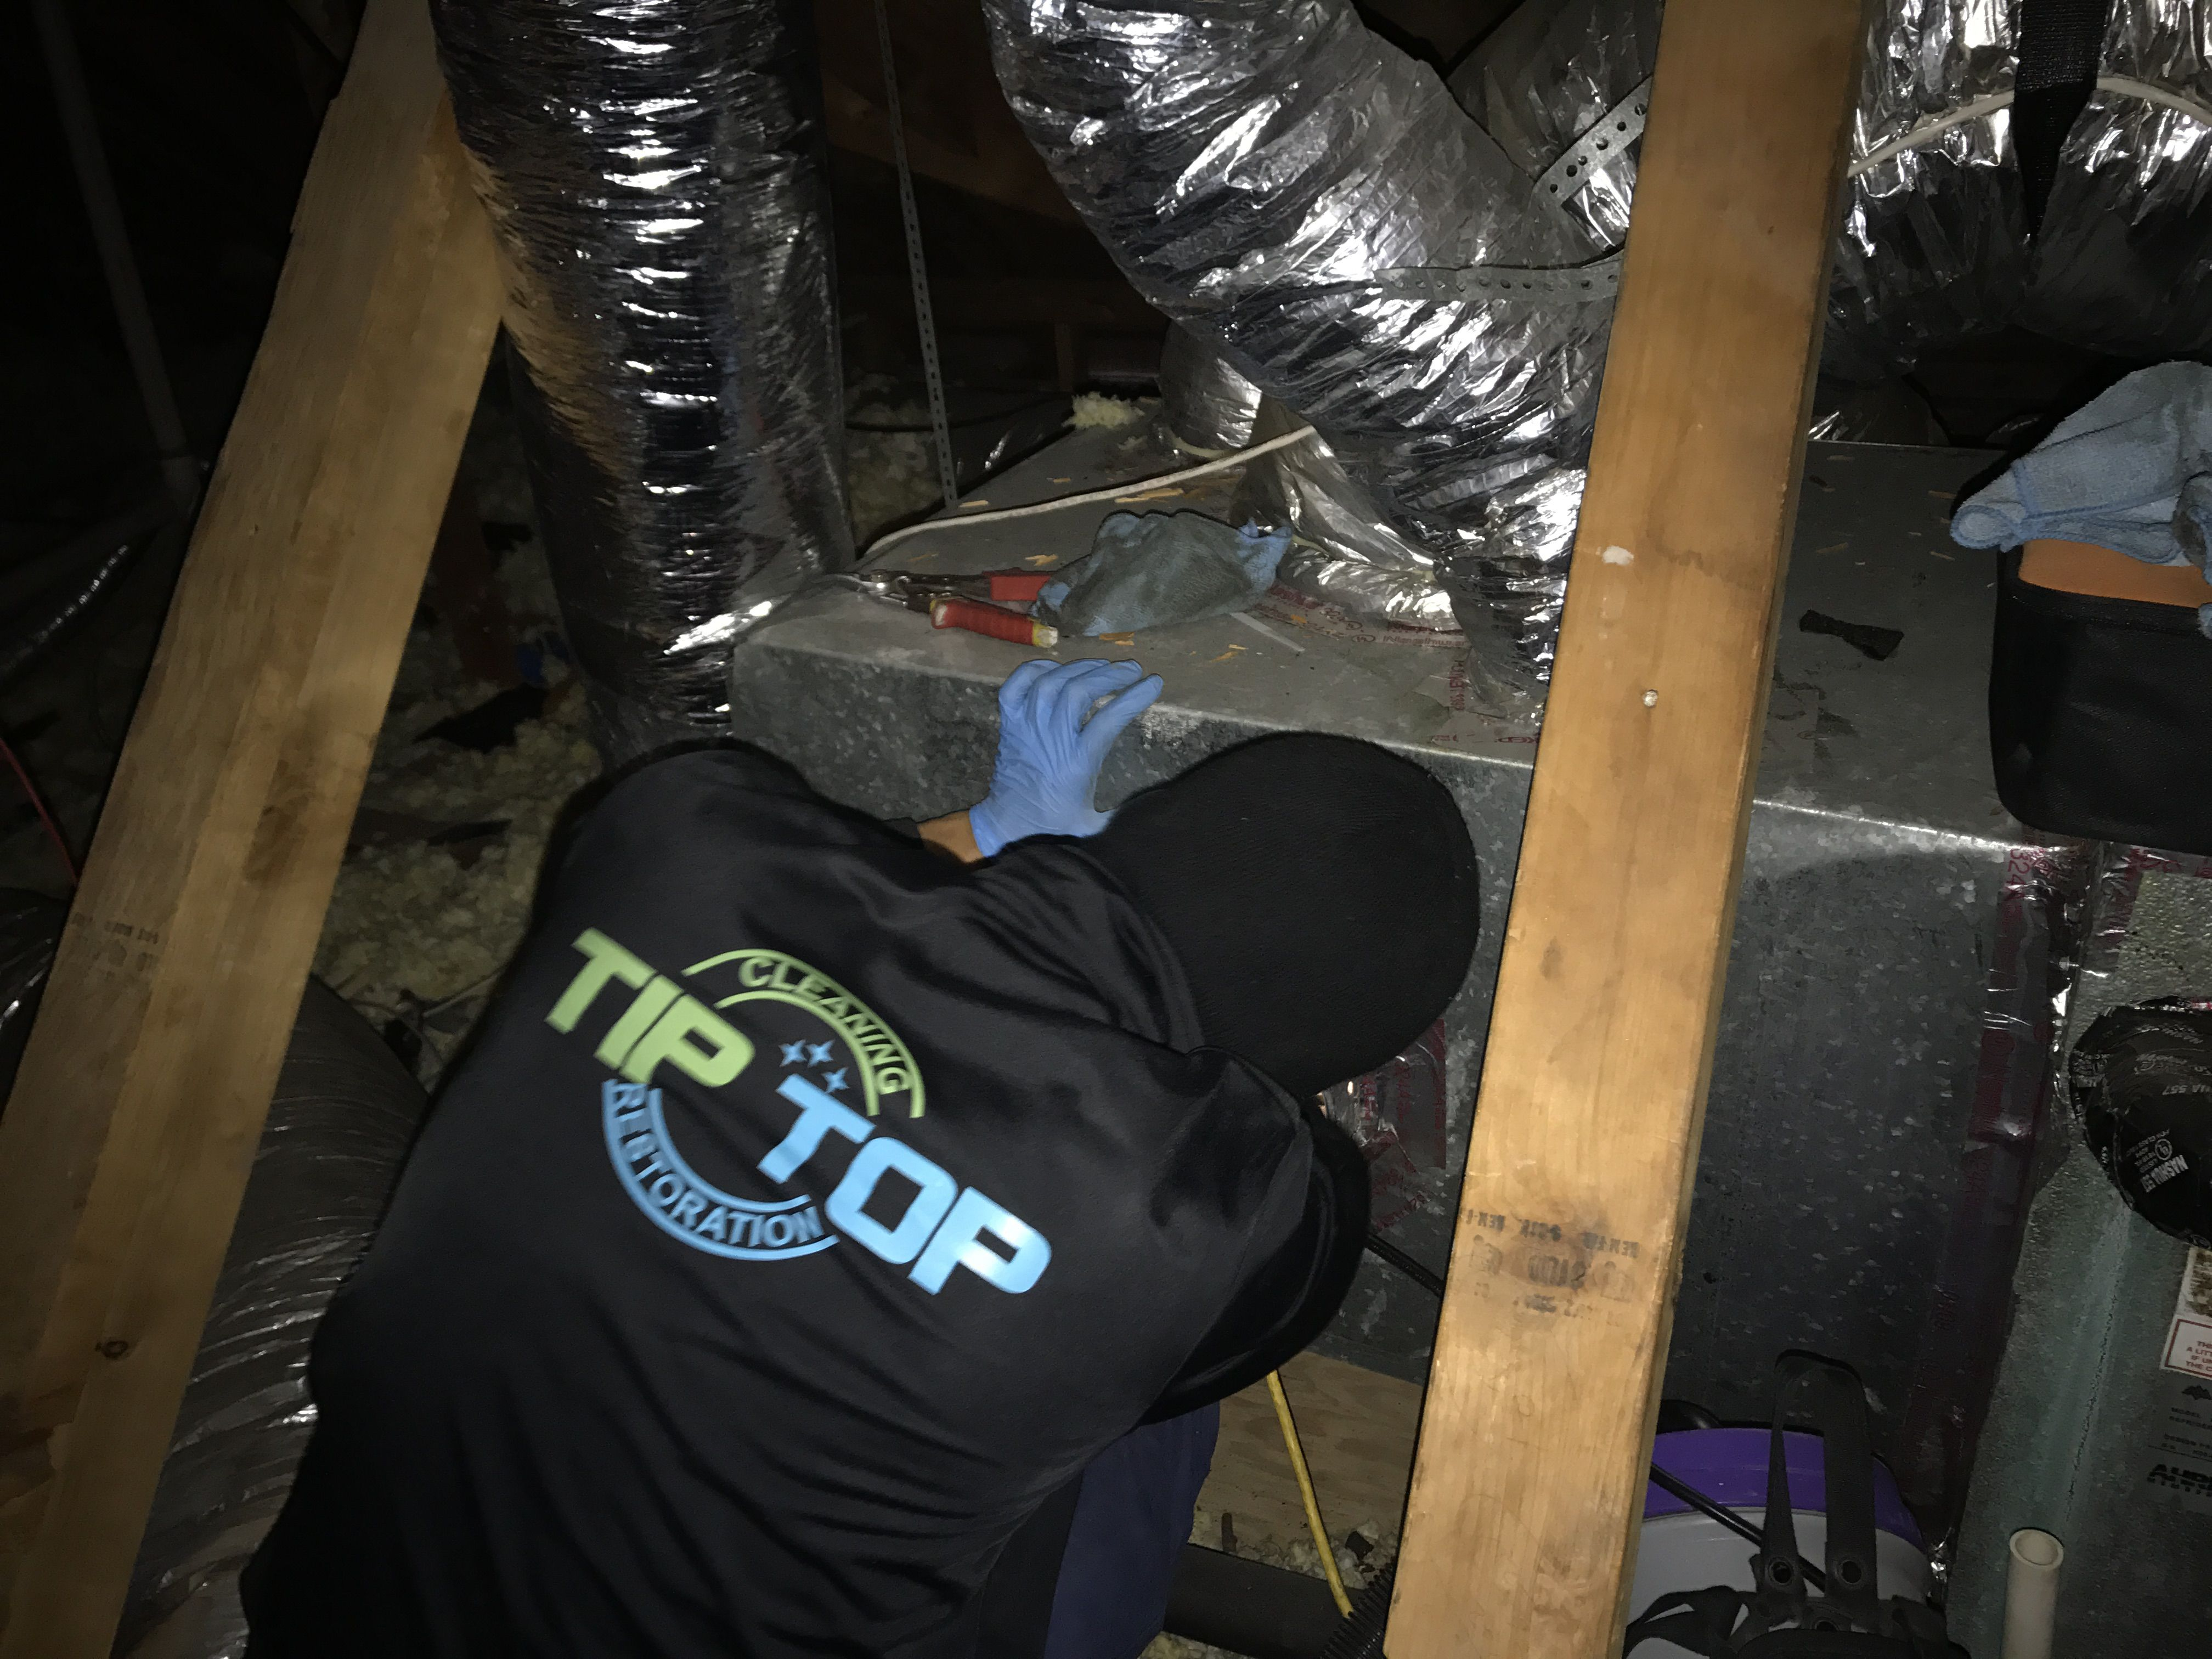 Air duct cleaning Clean air ducts, Air duct, Duct cleaning